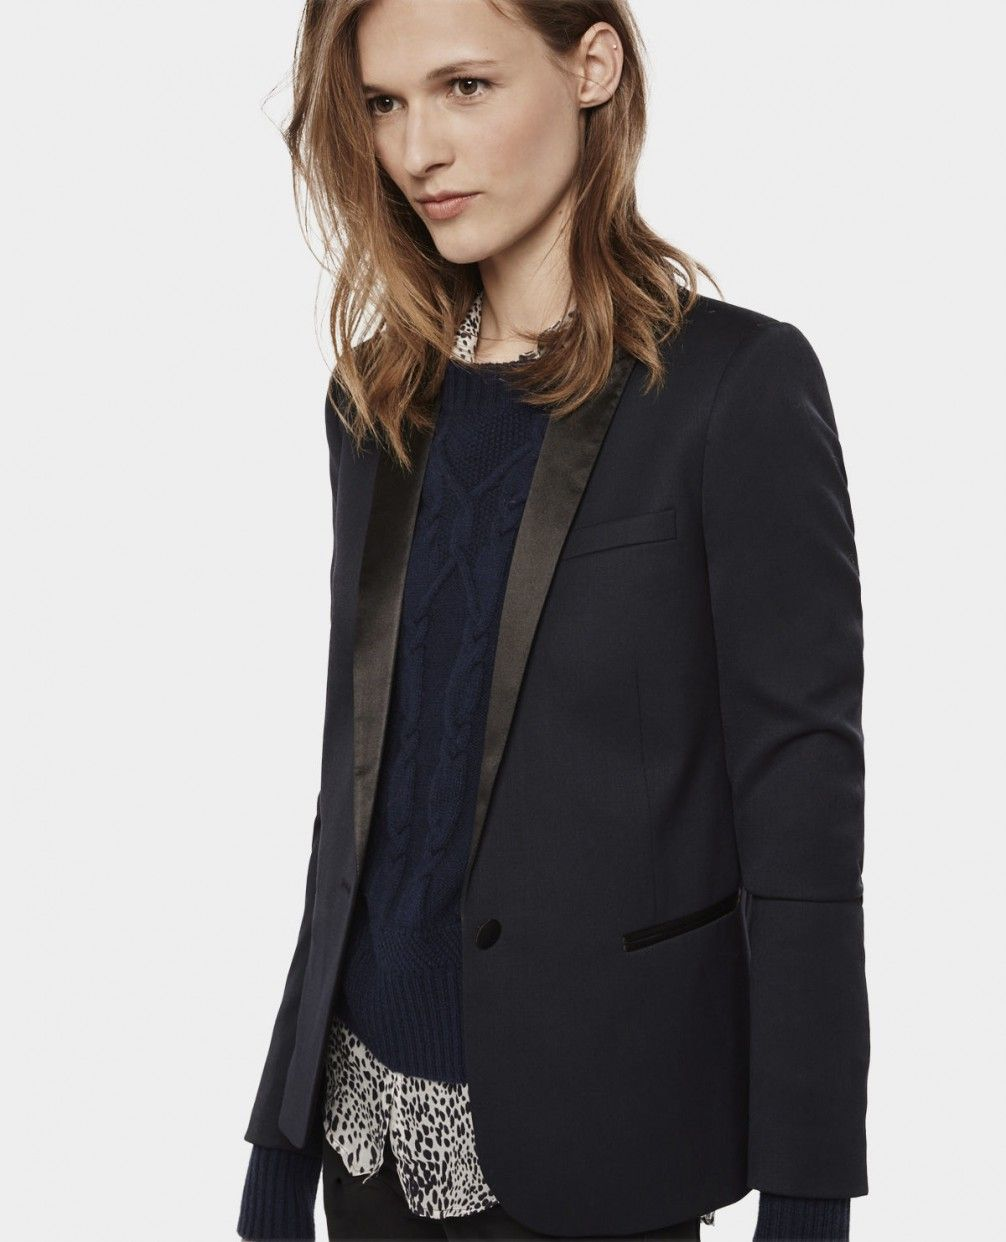 Smoking jacket with satin detail - All Clothing - Woman - The Kooples